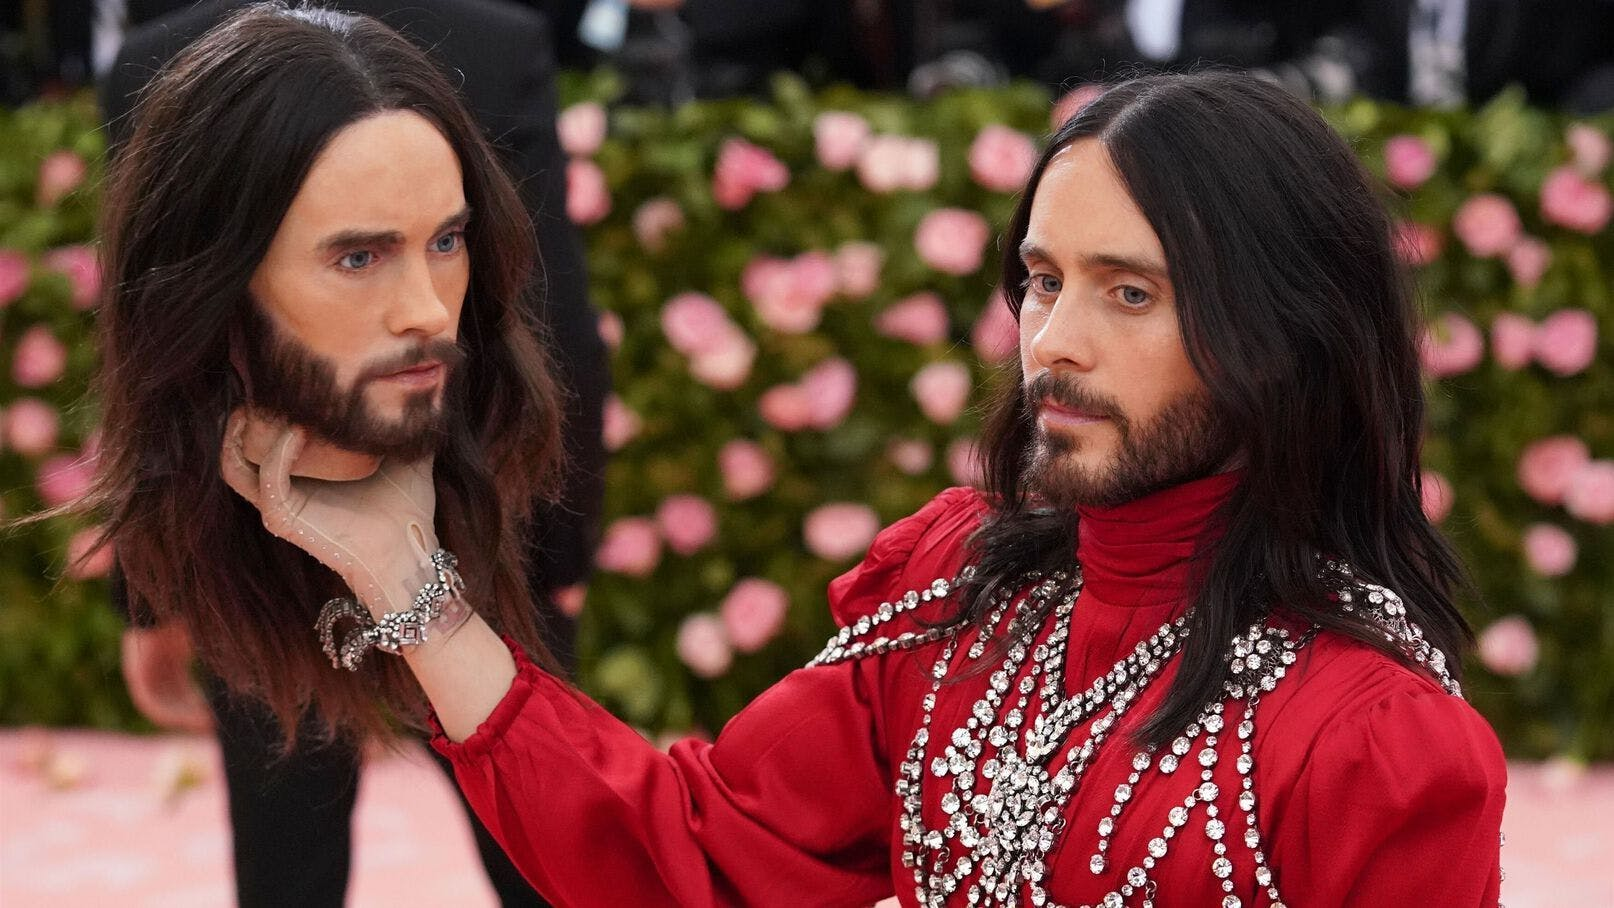 Is Jared Leto Regarded More Highly as an Actor or Musician